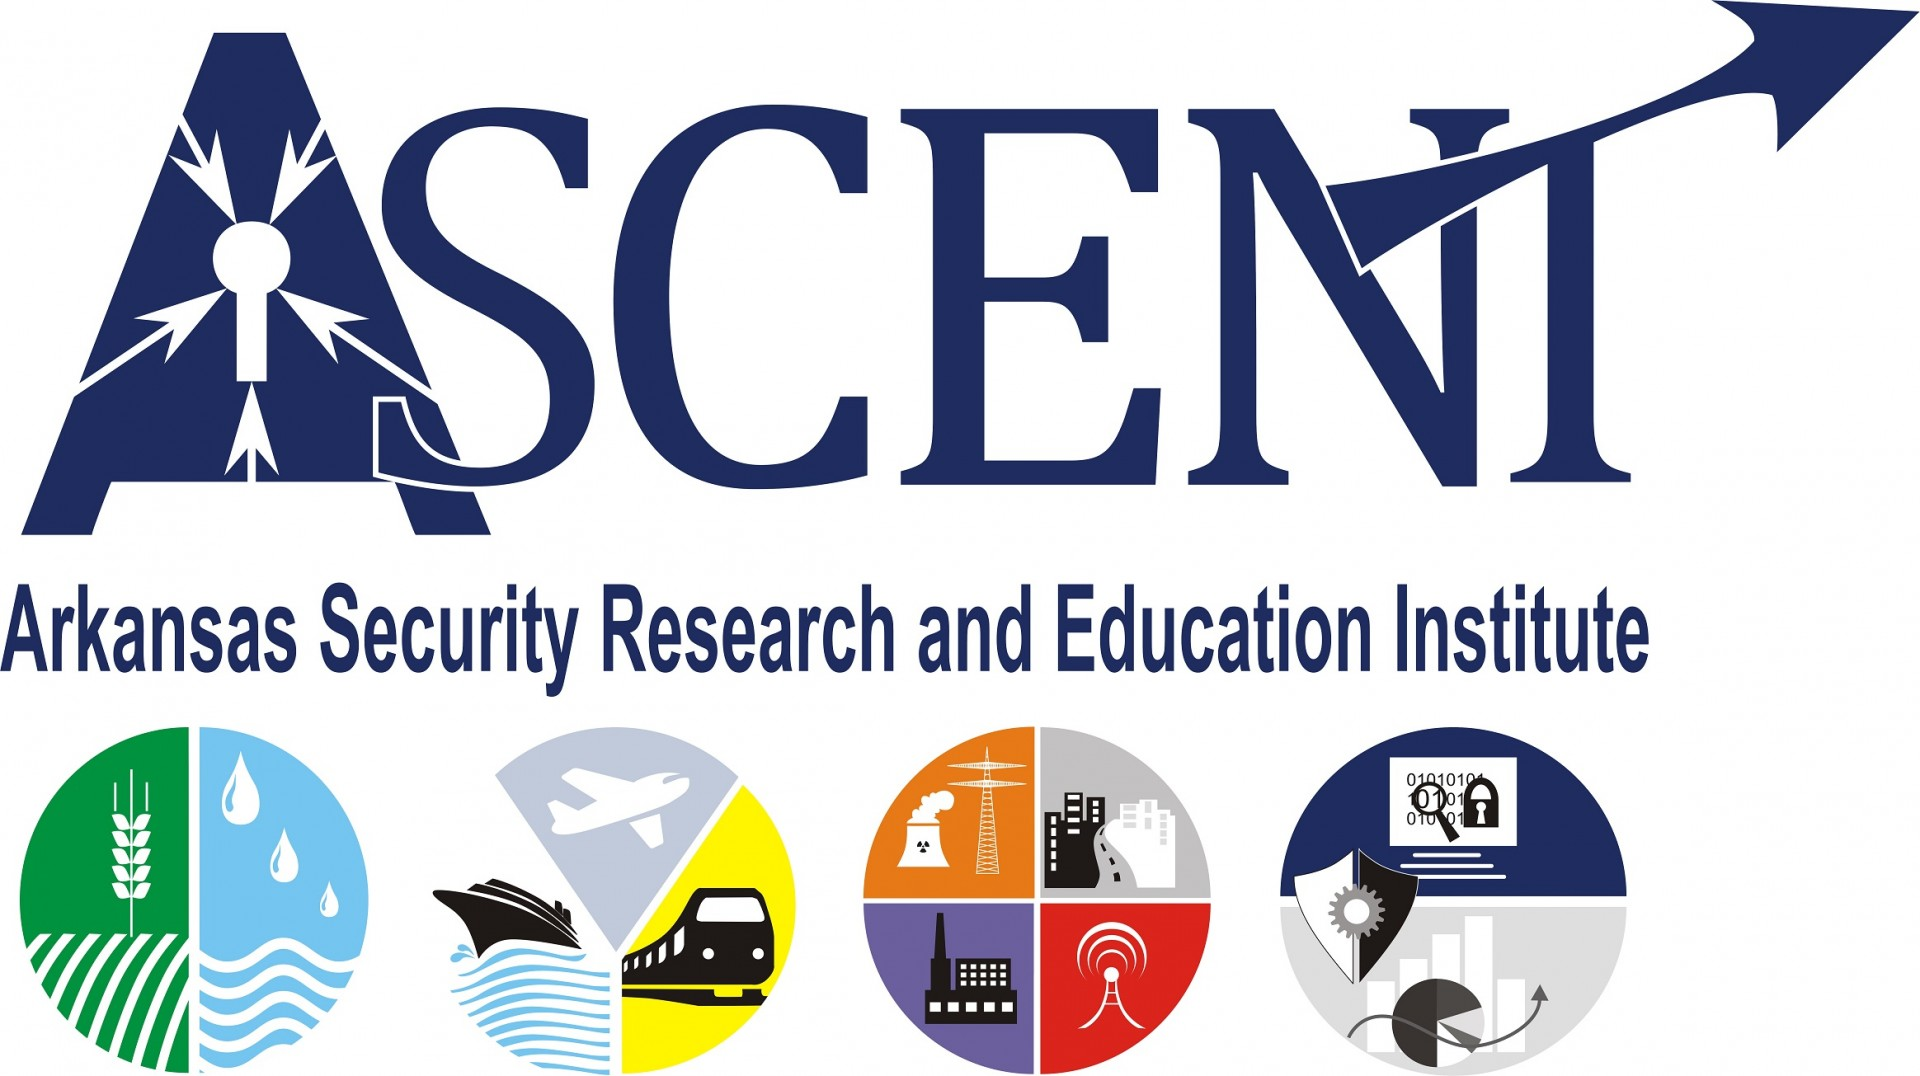 Arkansas Security Research and Education Institute